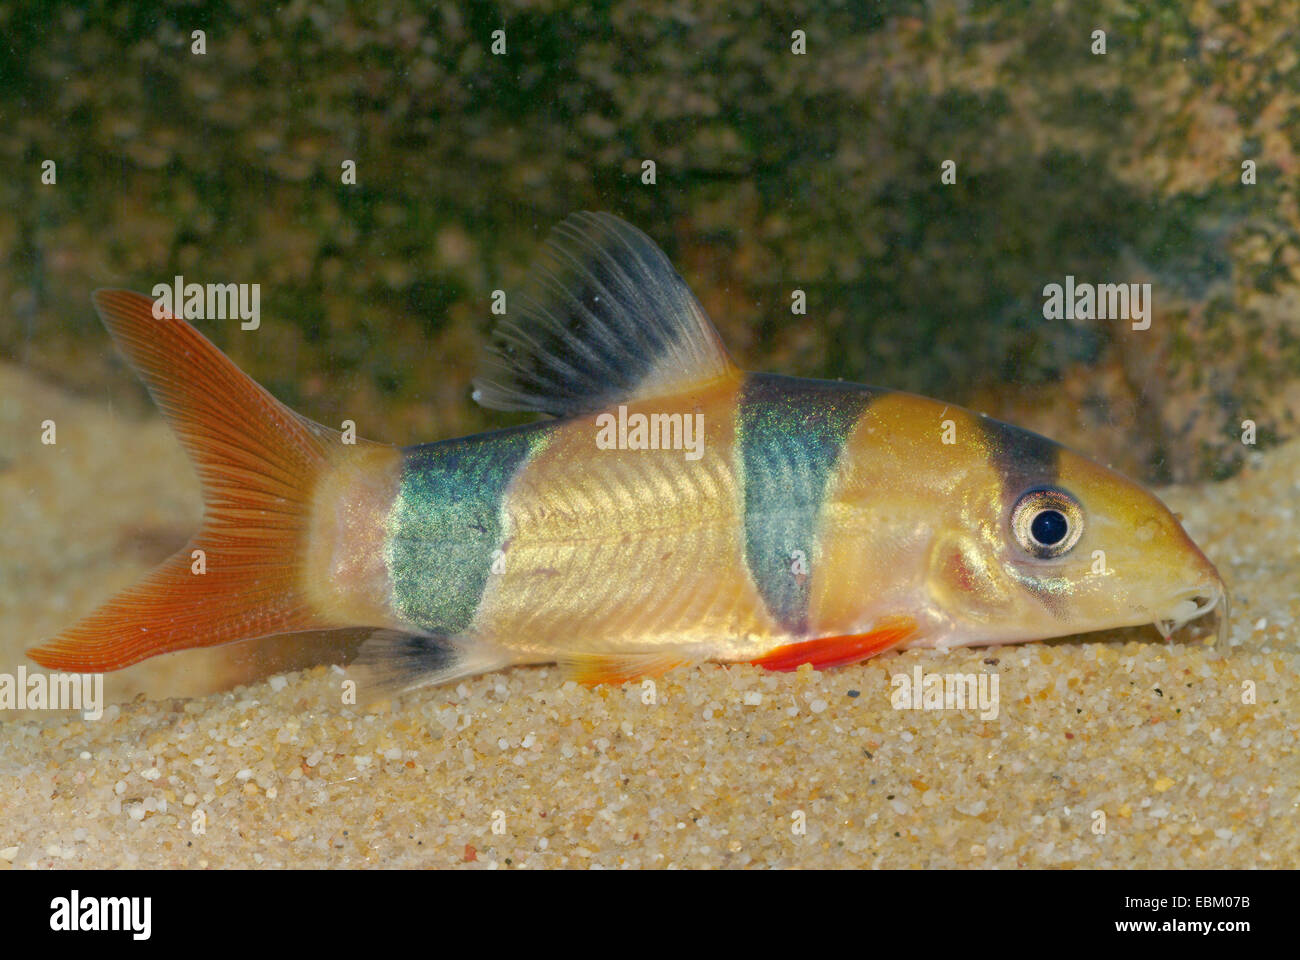 Clown loach (Botia macracantha), on the ground - Stock Image